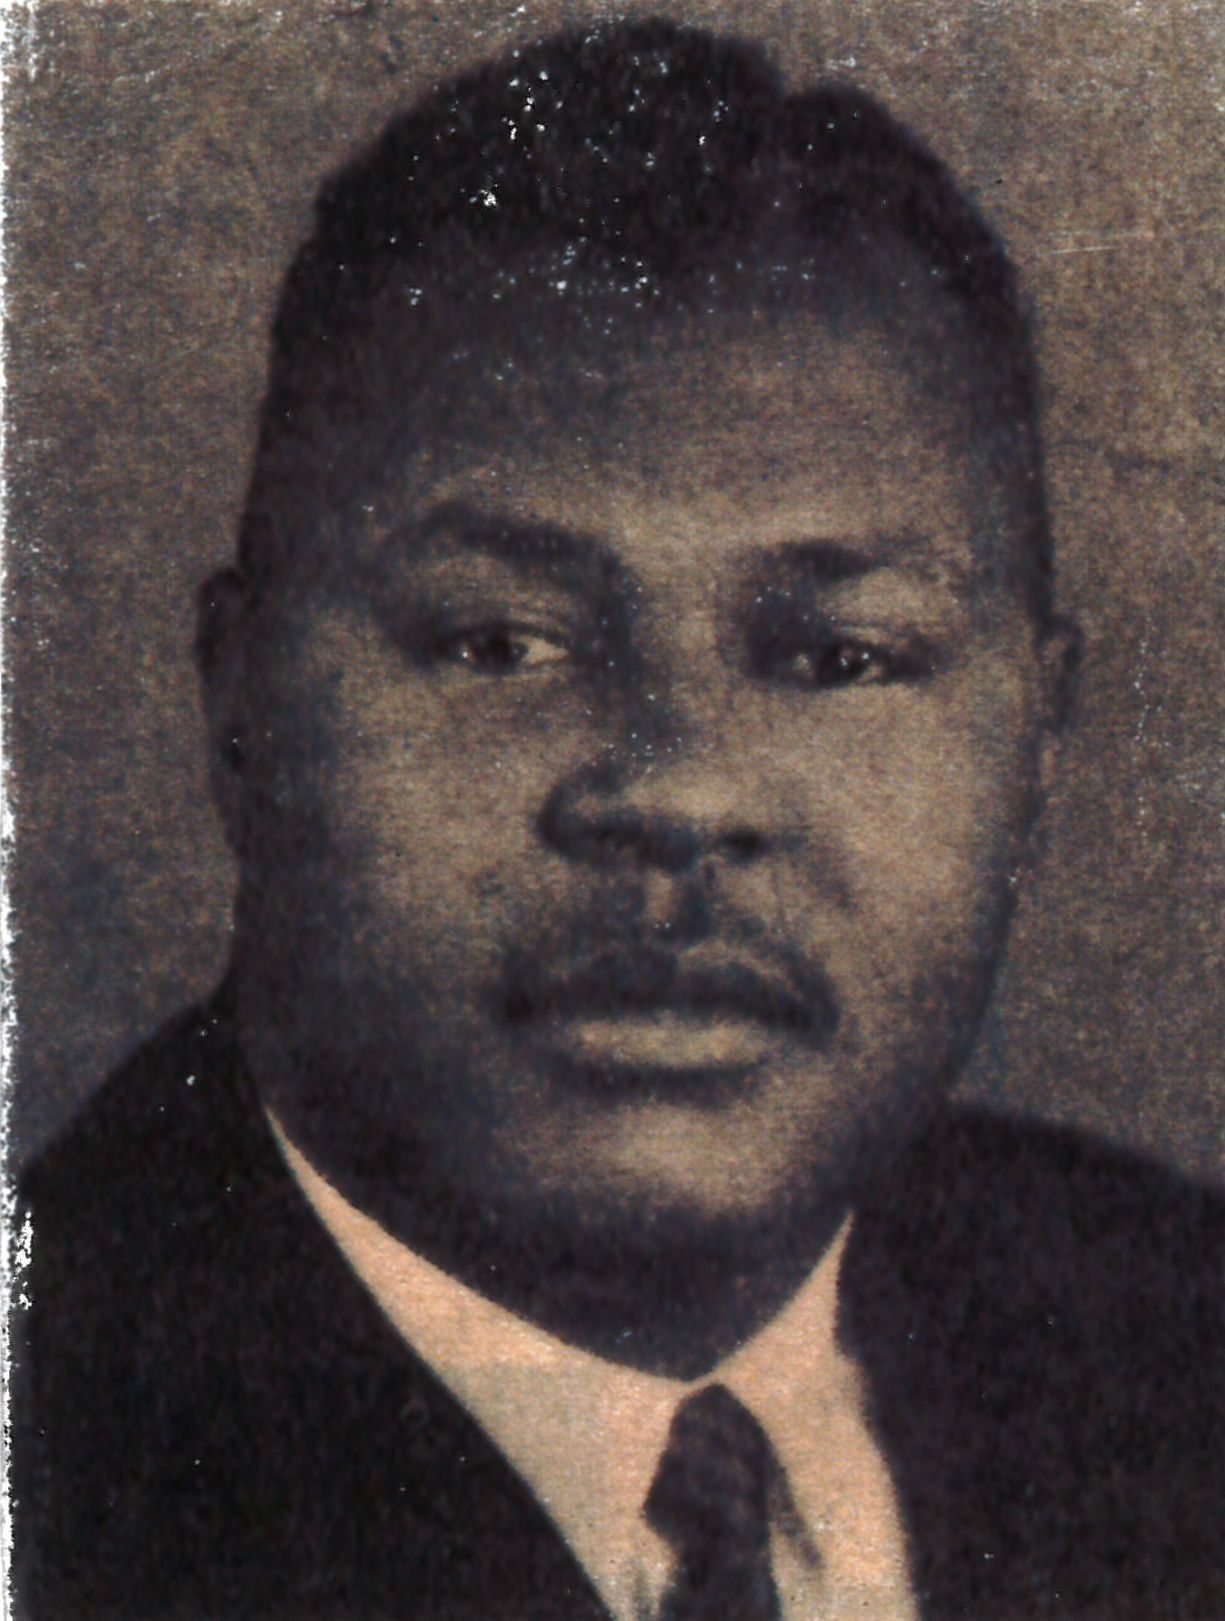 Detective Theodore Roosevelt Cole, Jr. | Chapel Hill Police Department, North Carolina